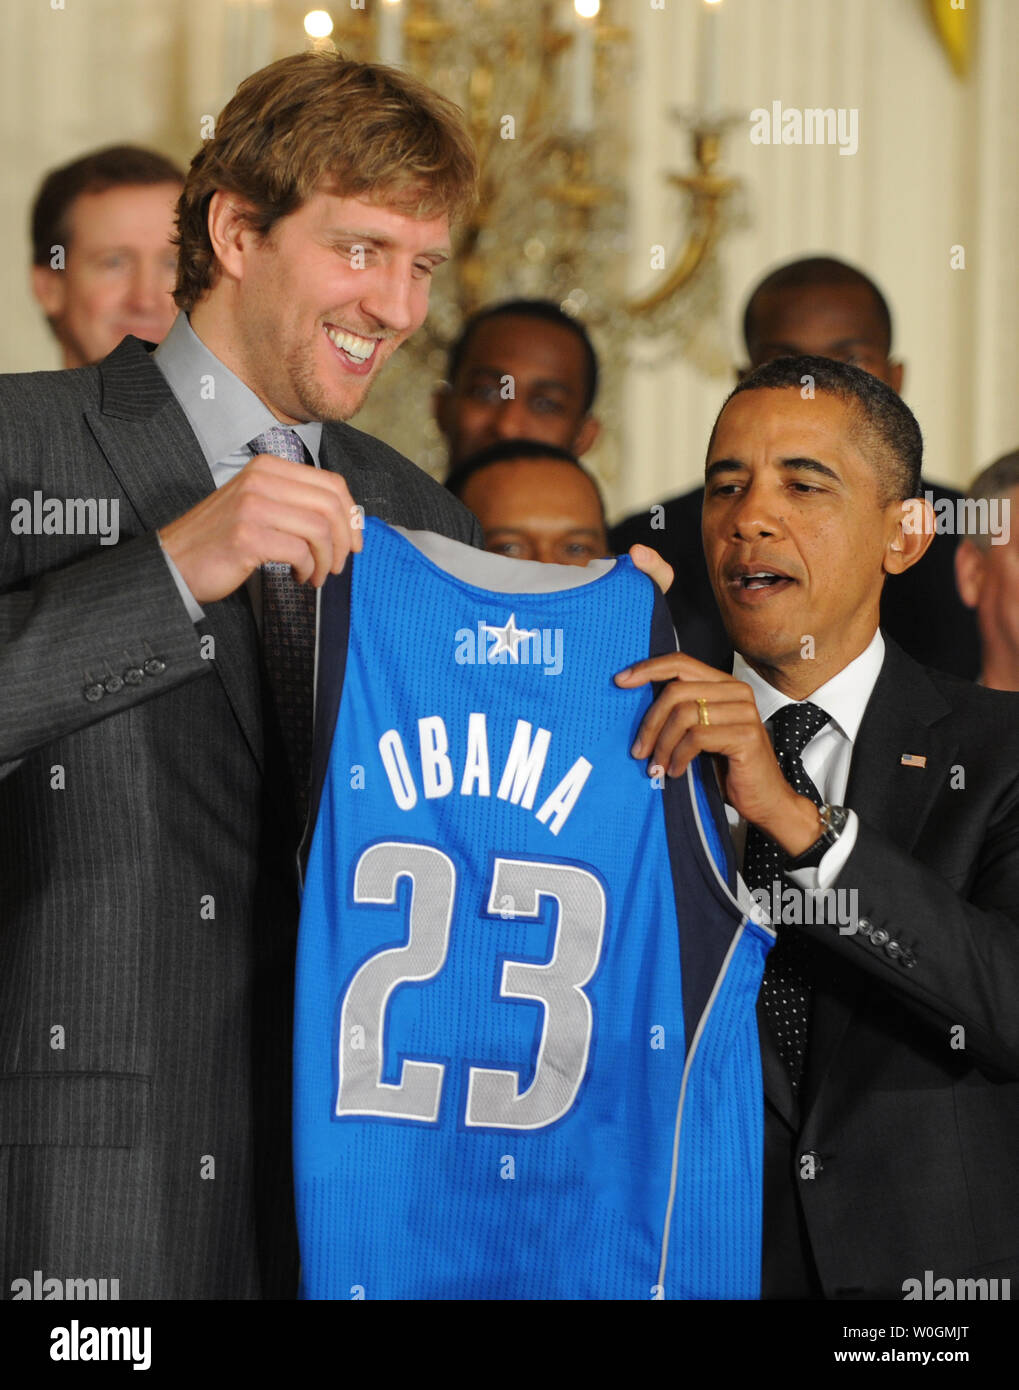 on sale 2f098 e972a U.S. President Barack Obama receives a Dallas Mavericks ...